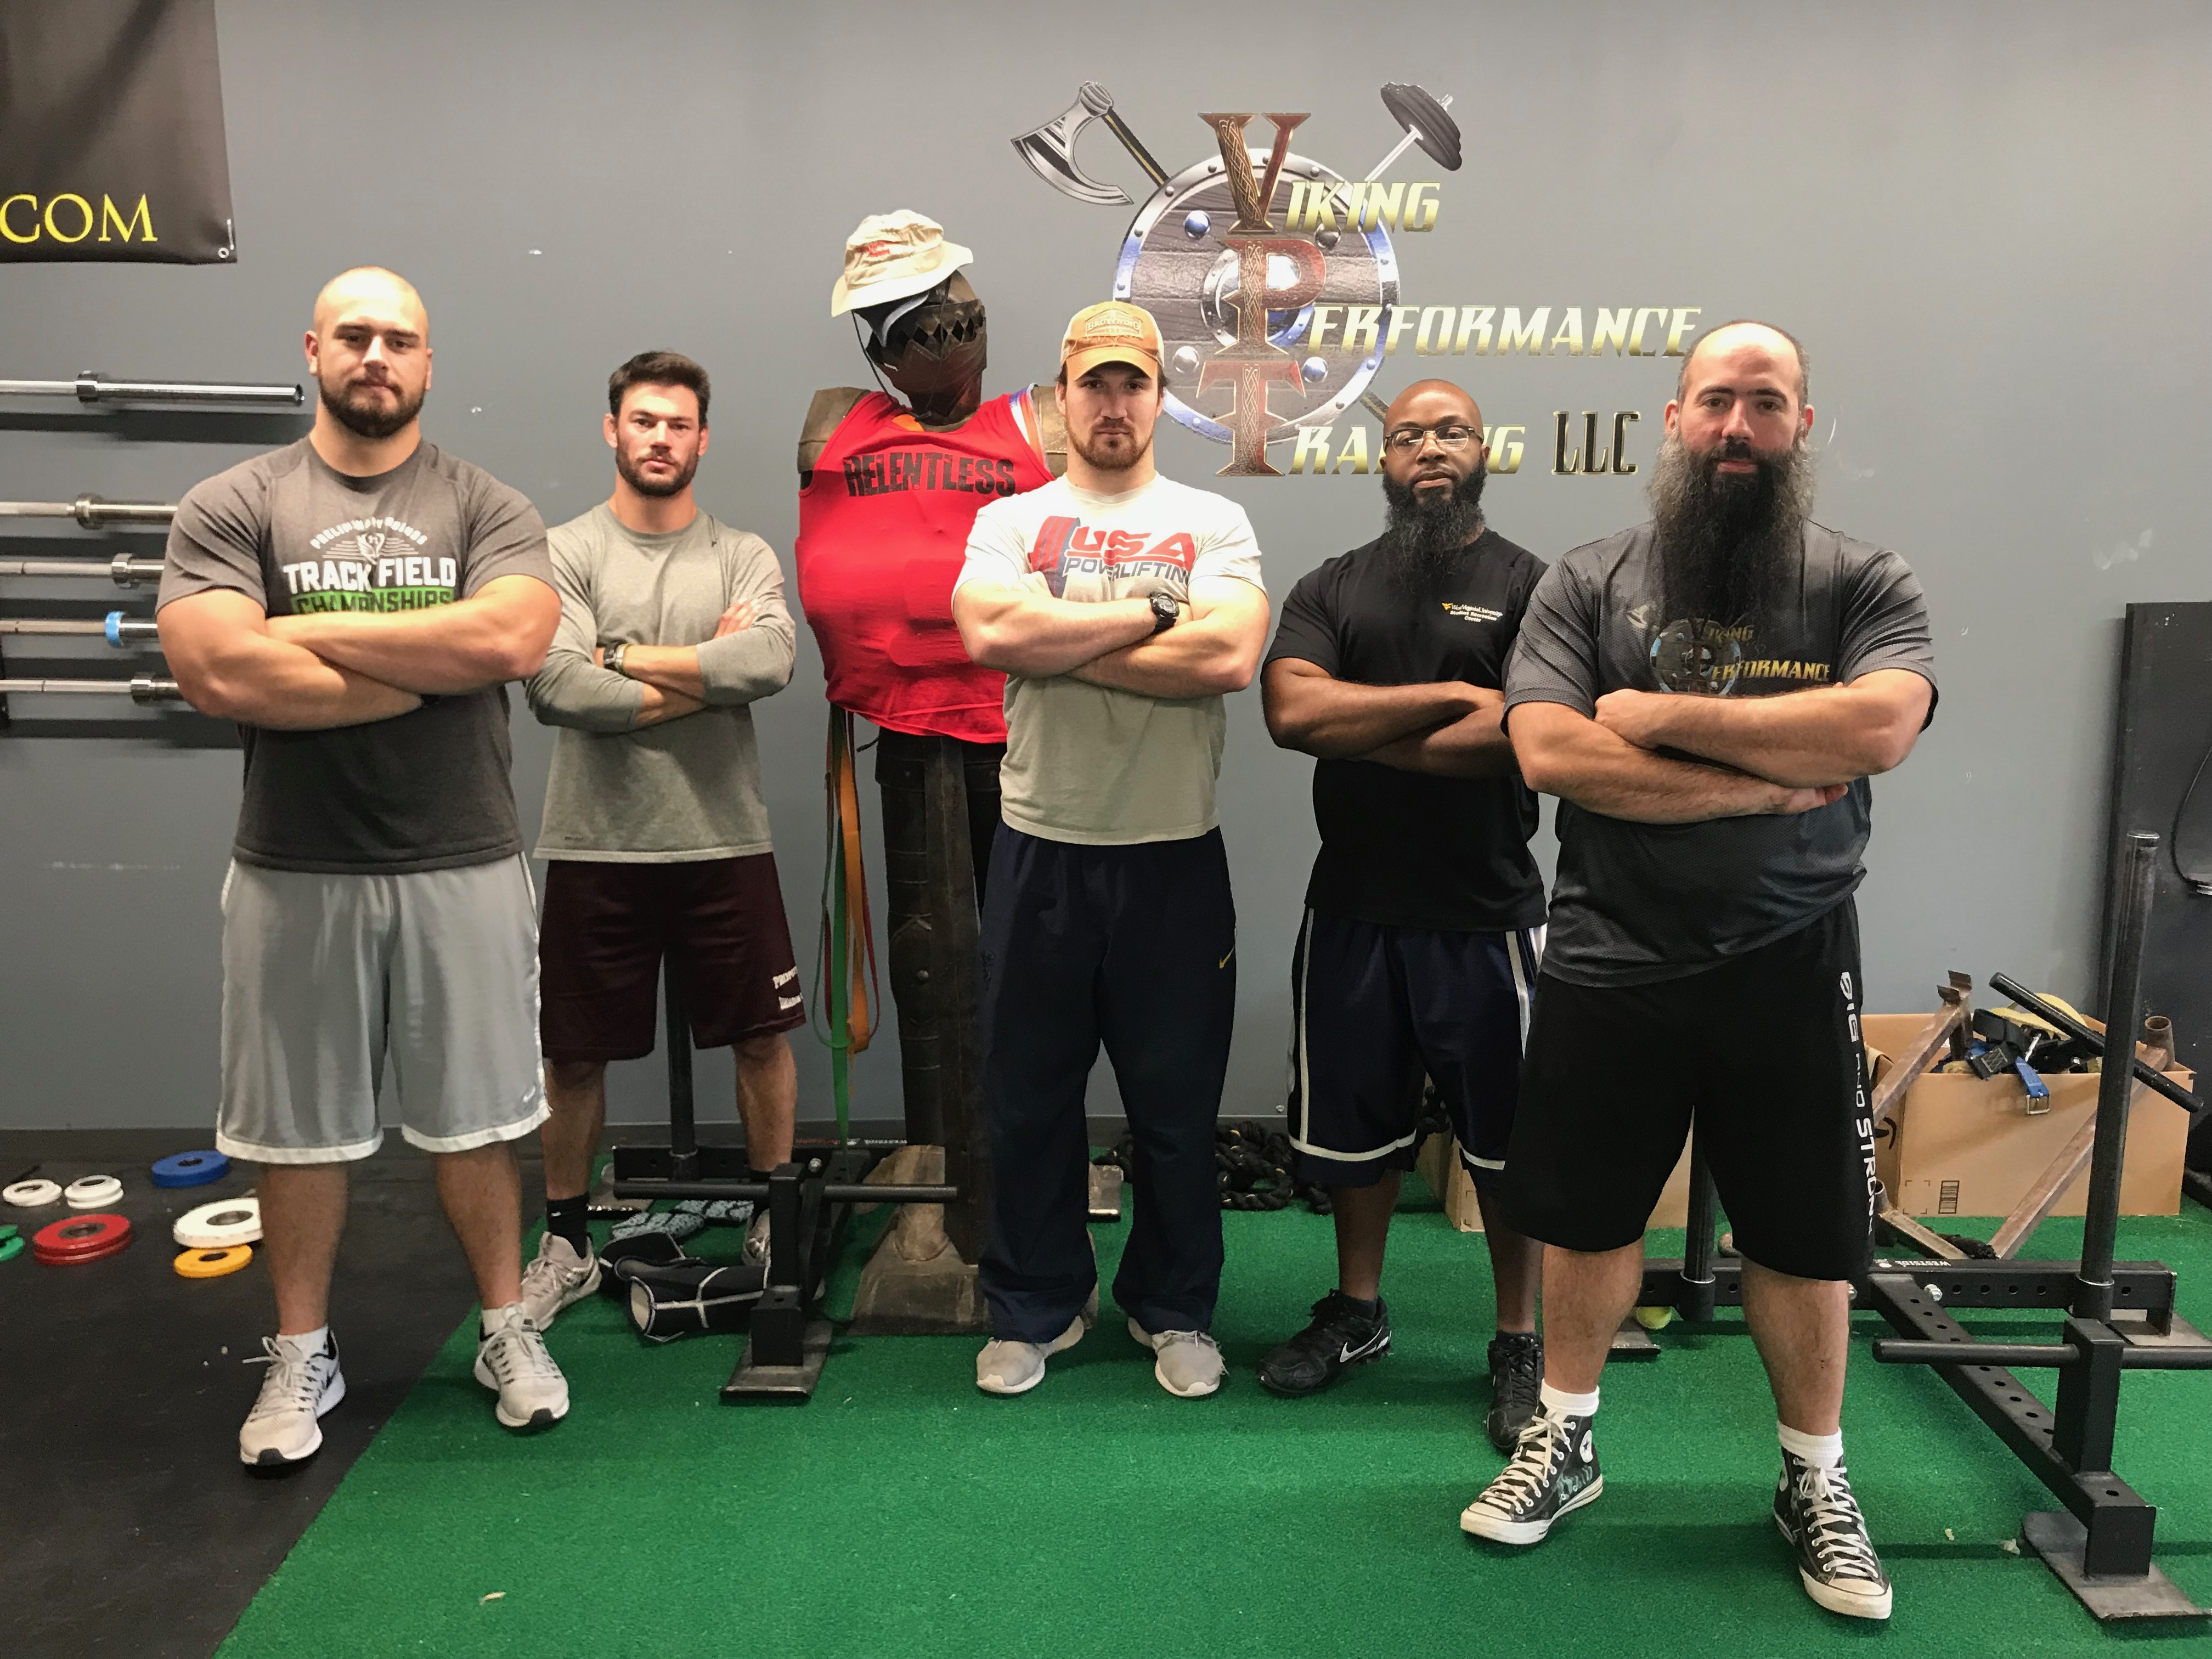 Coaches & Trainers – Viking Performance Training